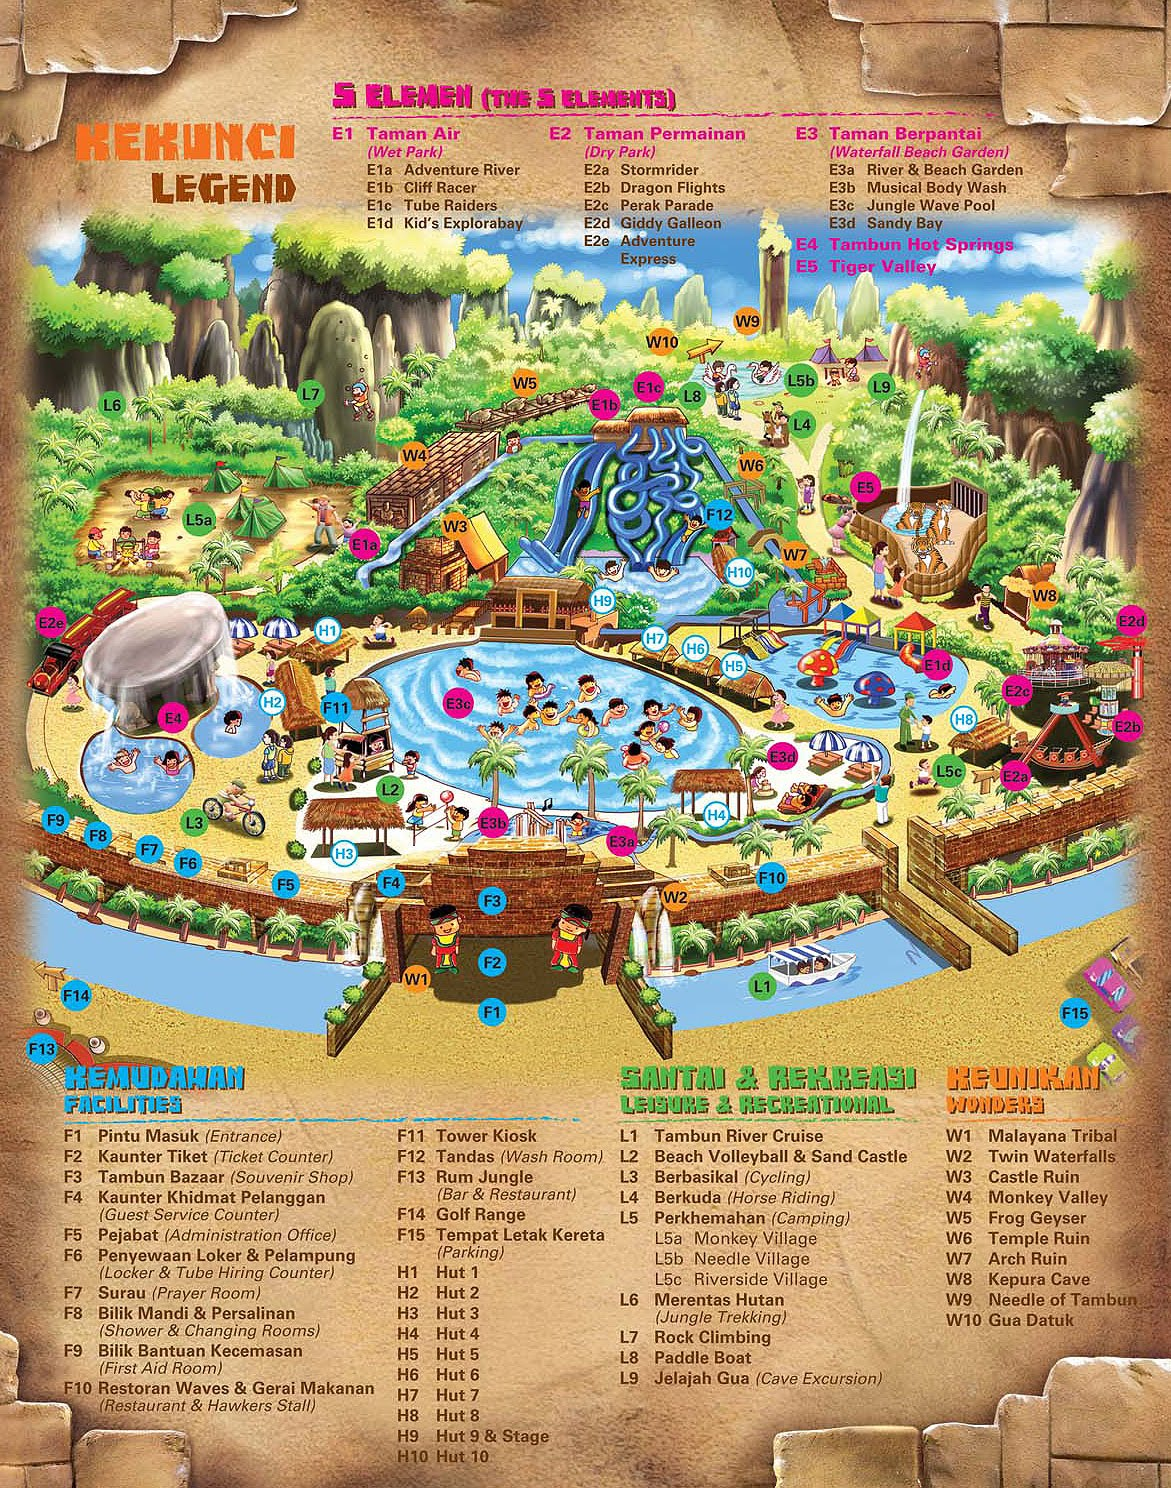 Map to lost world of tambun howmap2008 lwot park map lost world petting zoo map lostworld1 lost world tambun lost world of tambun gumiabroncs Choice Image